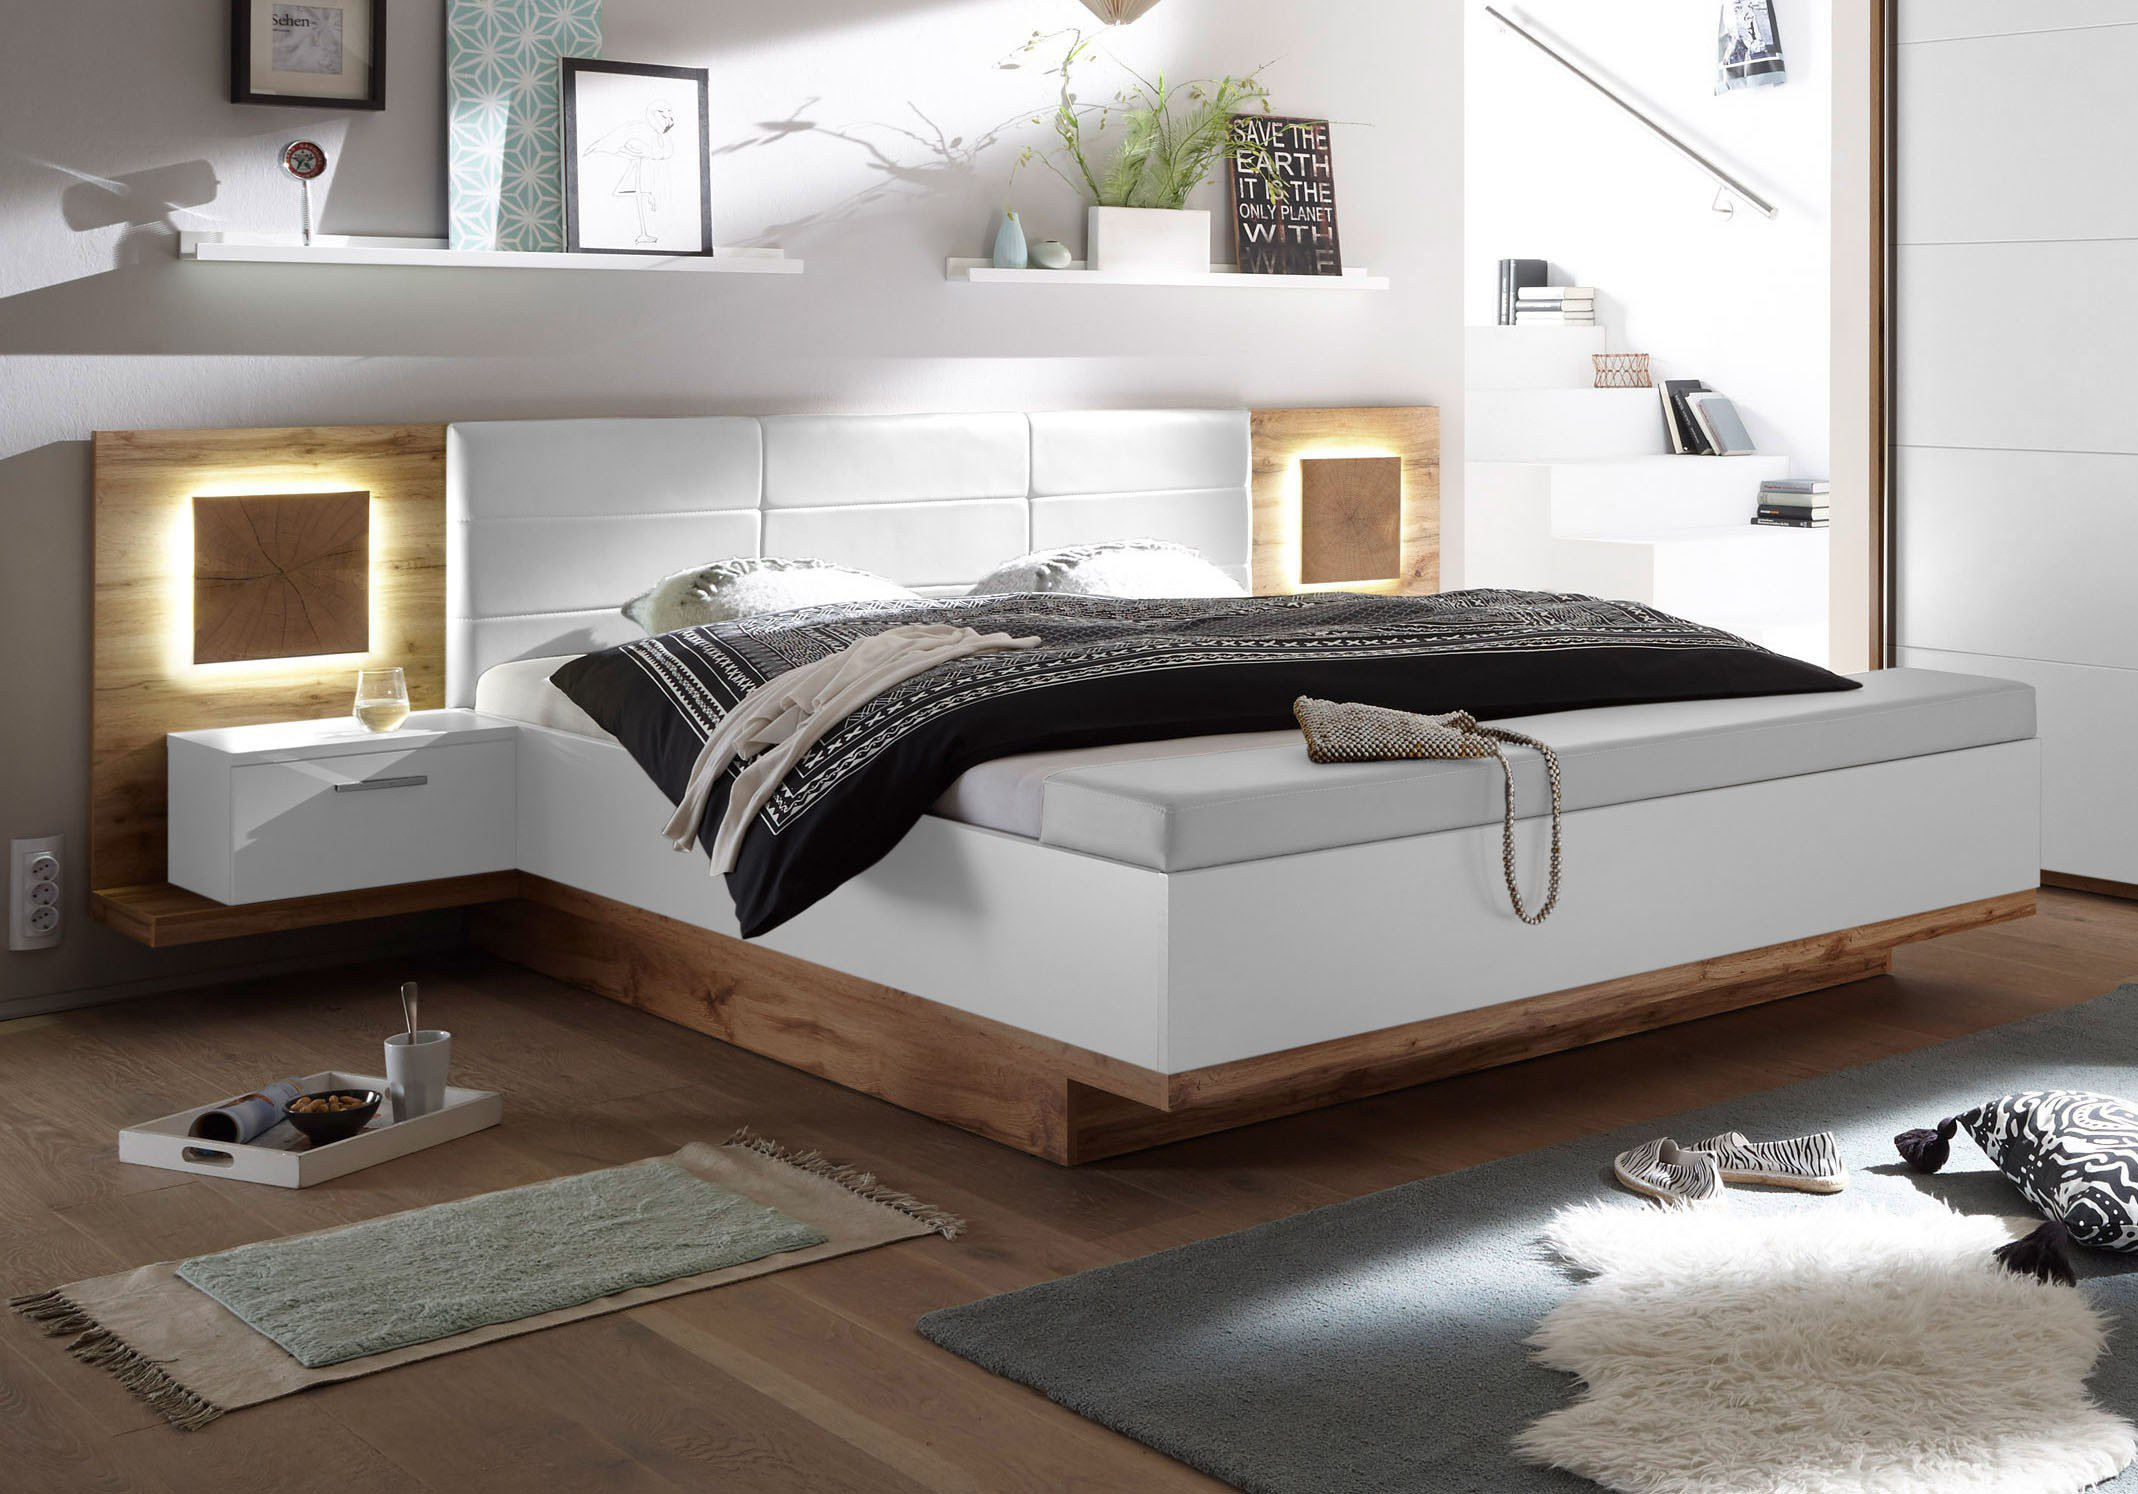 pol power bett mit bettbank capri xl m bel letz ihr online shop. Black Bedroom Furniture Sets. Home Design Ideas